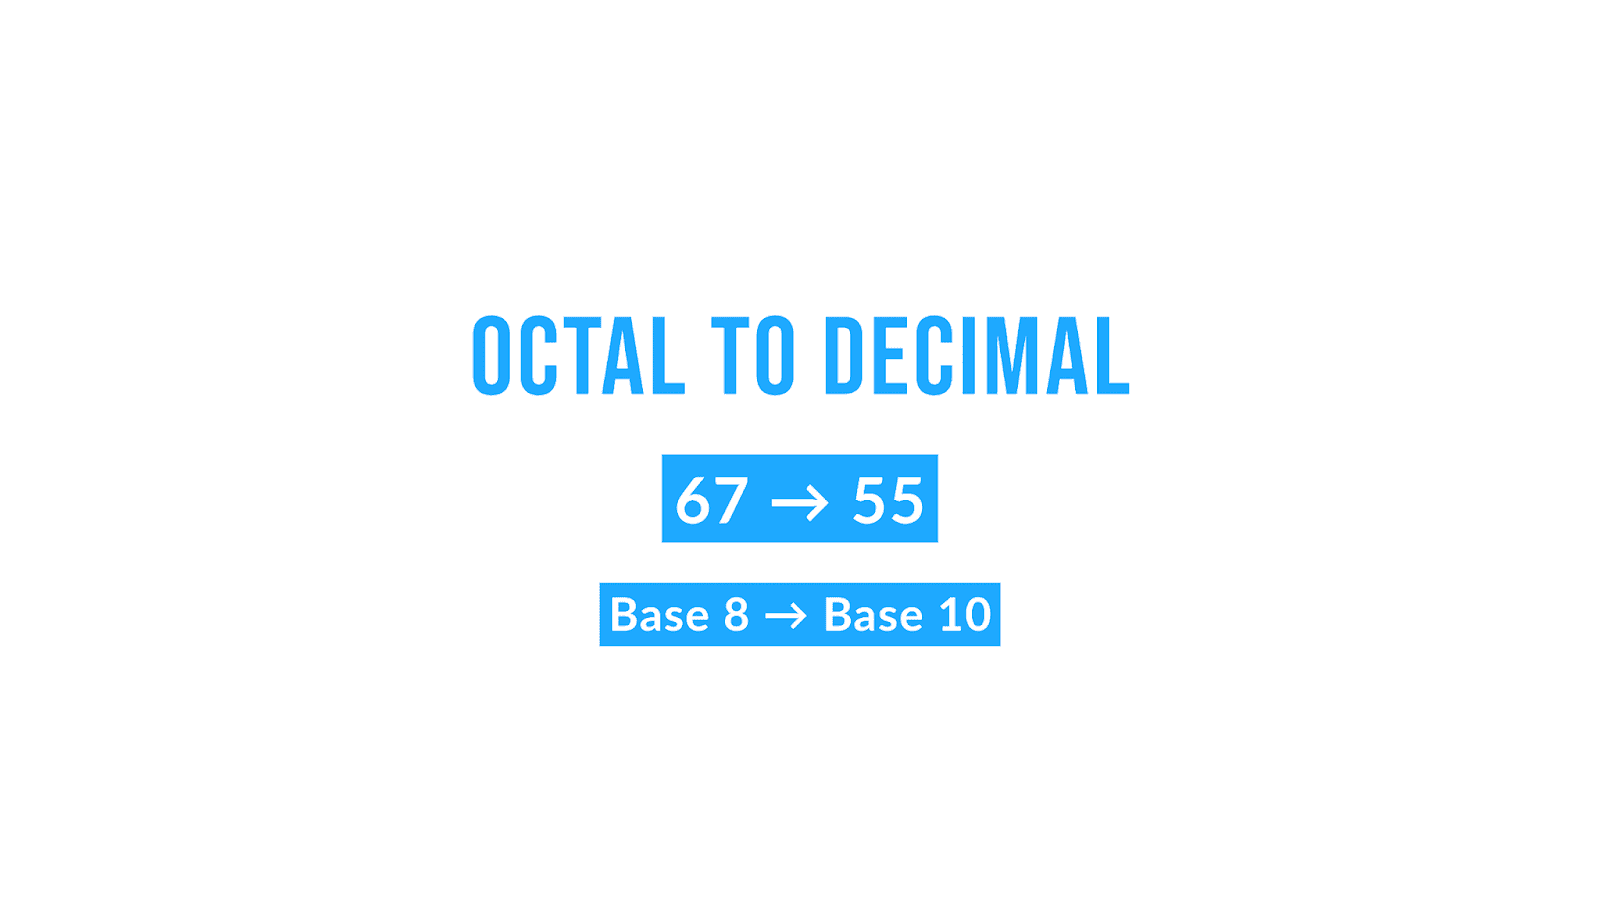 Output of C program code to convert octal to decimal